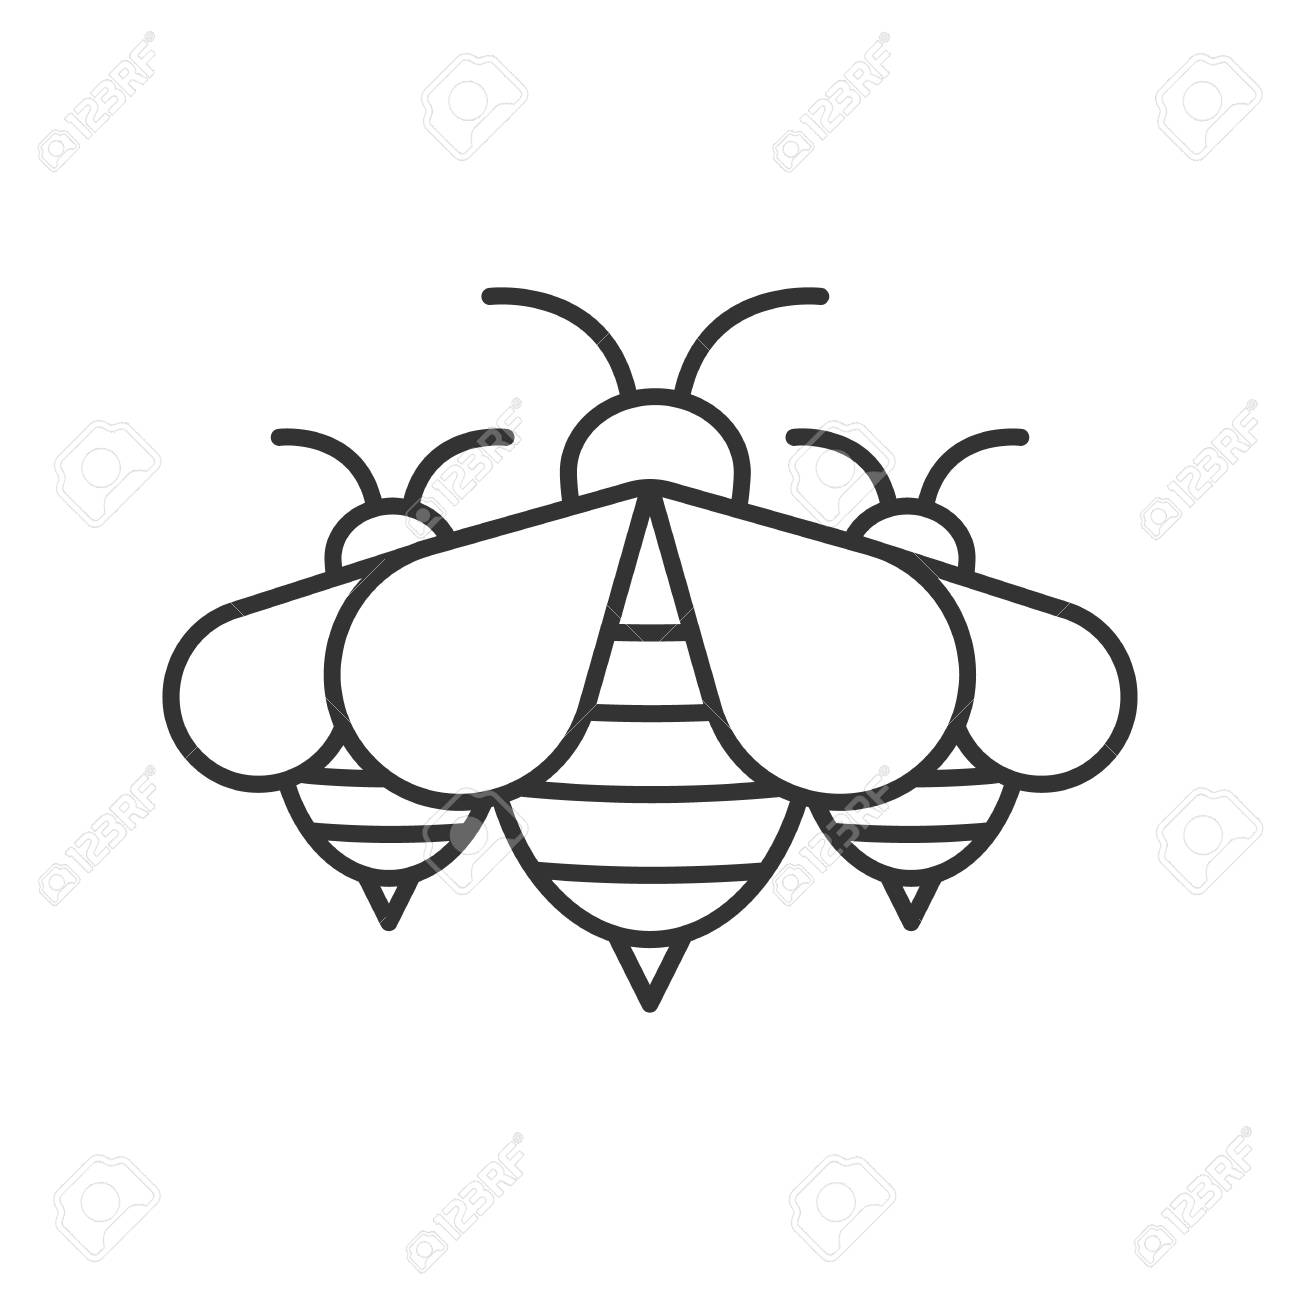 Swarm of honey bees linear icon wasps thin line illustration swarm of honey bees linear icon wasps thin line illustration apiary contour symbol publicscrutiny Images